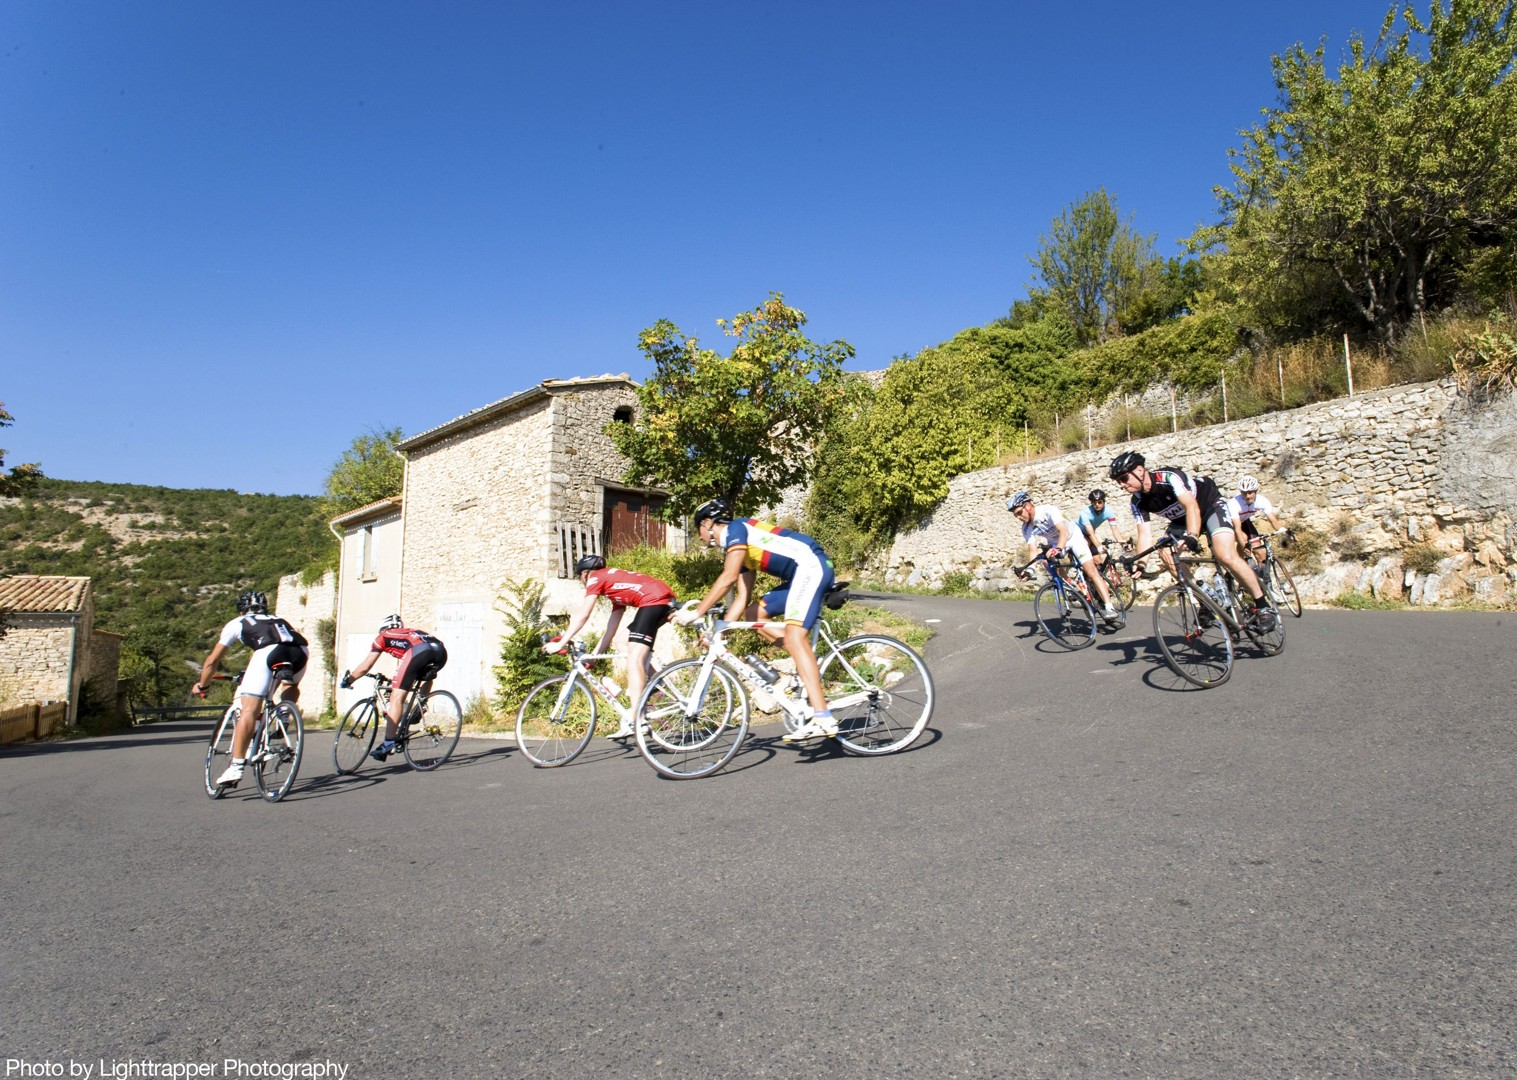 provence-france-road-cycling-adventure.jpg - France - Provence - Le Ventoux a Velo - Road Cycling